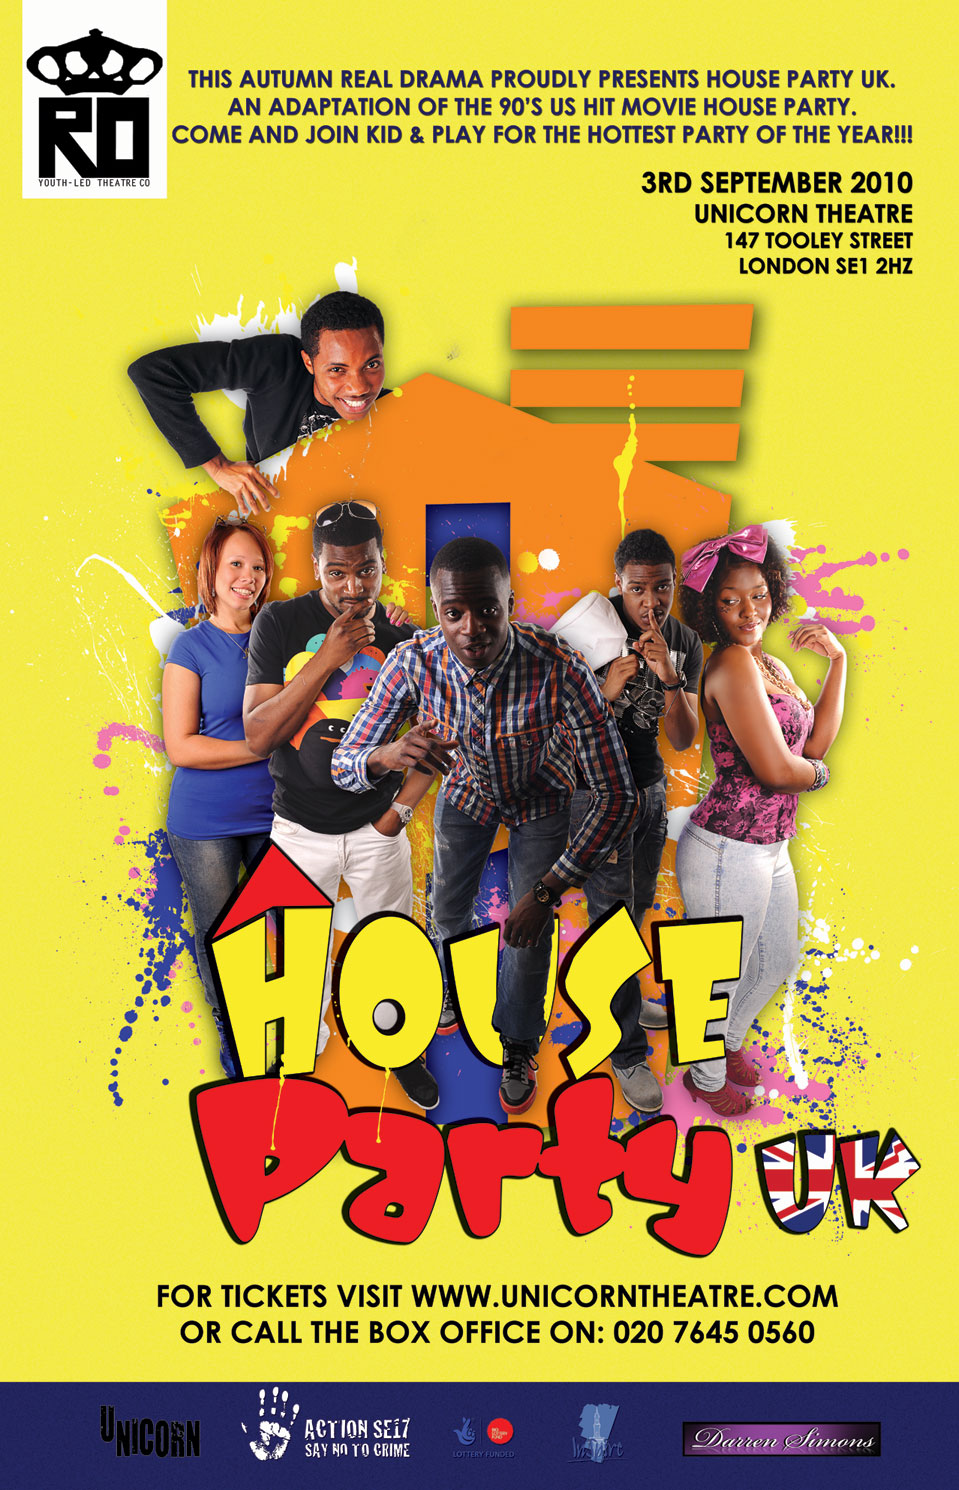 House party 2 cast : Kevin smith tv series